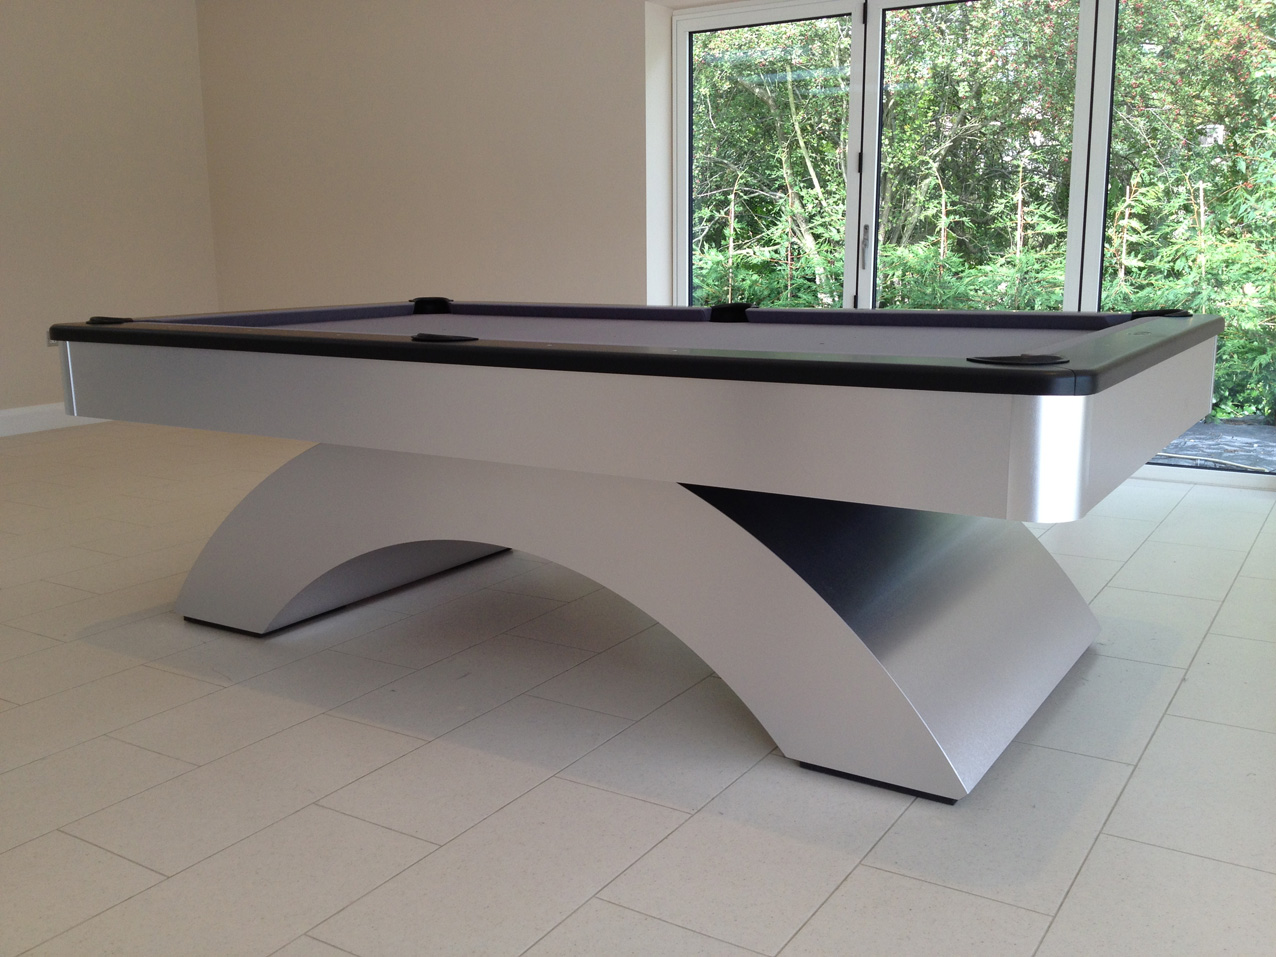 Olhausen Waterfall Pool Table - Brushed Aluminium, Grey Cloth